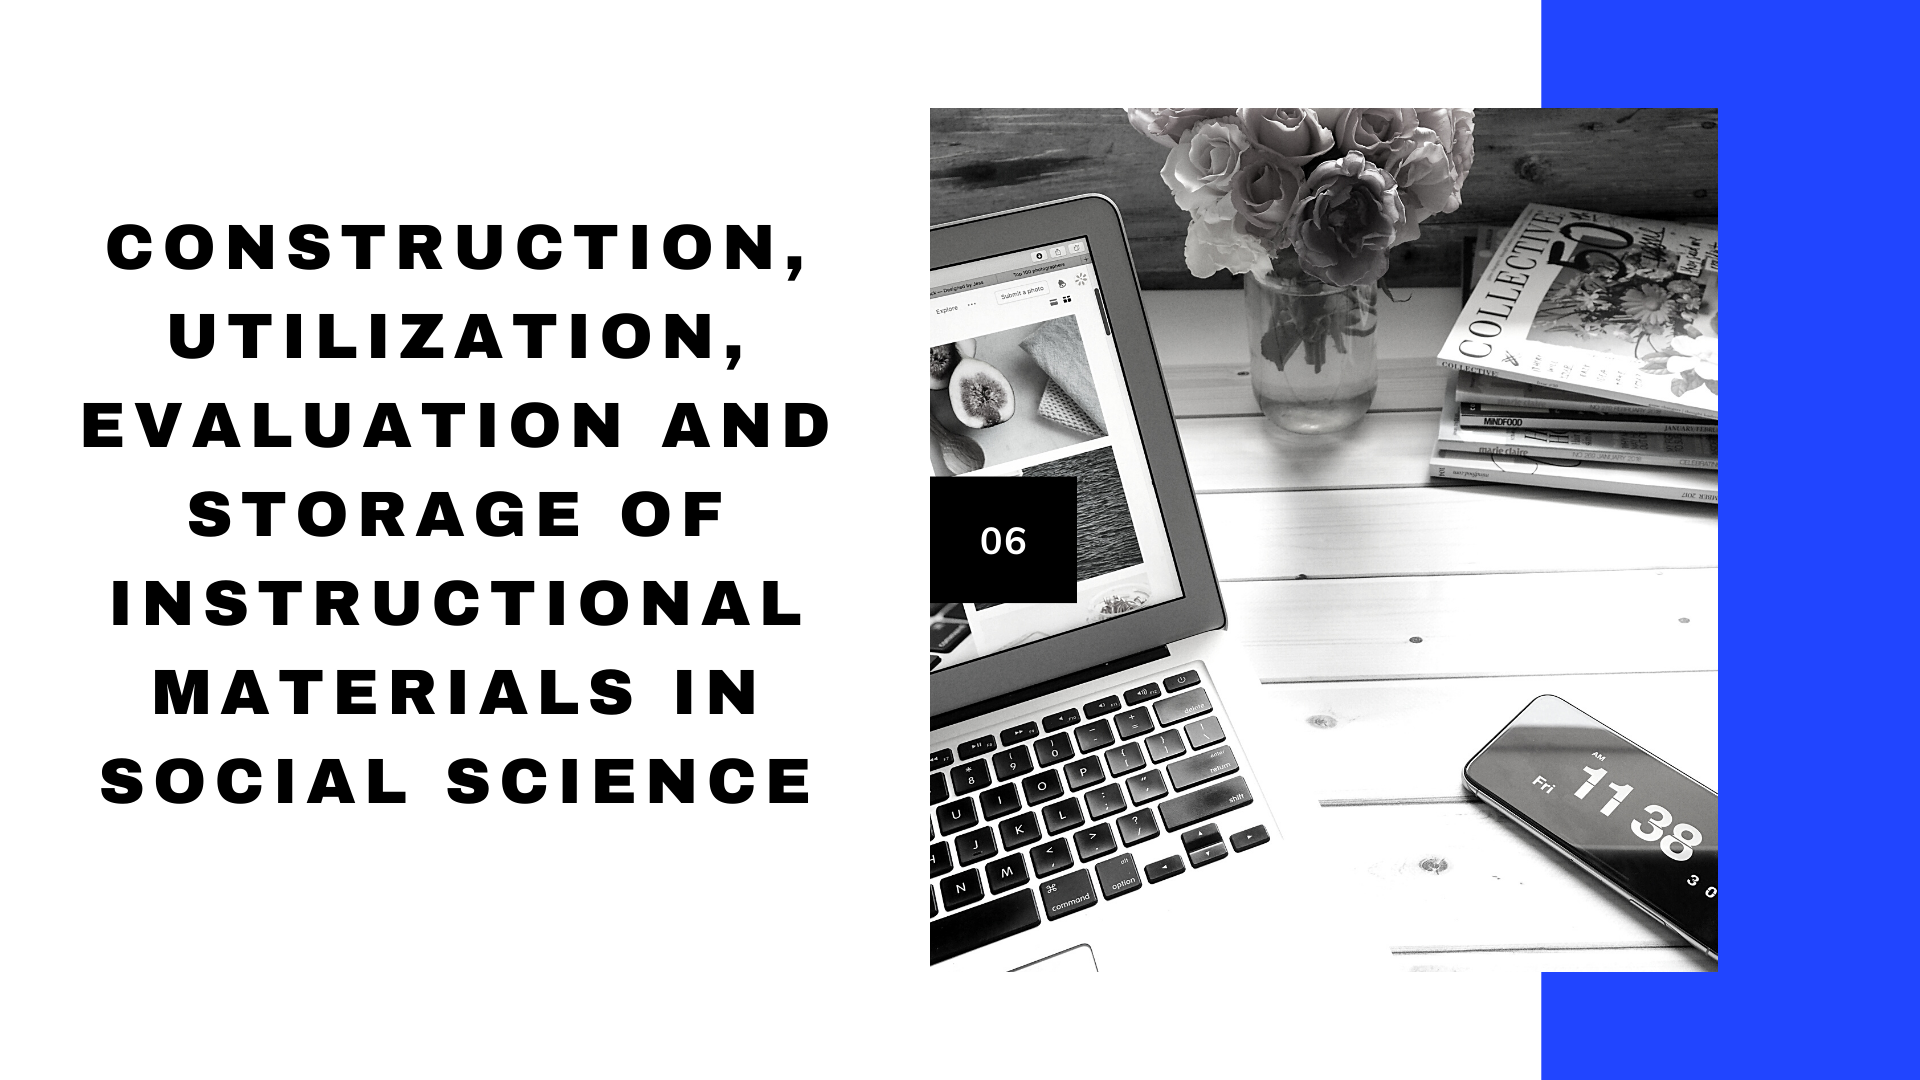 CONSTRUCTION, UTILIZATION, EVALUATION AND STORAGE OF INSTRUCTIONAL MATERIALS IN SOCIAL SCIENCE